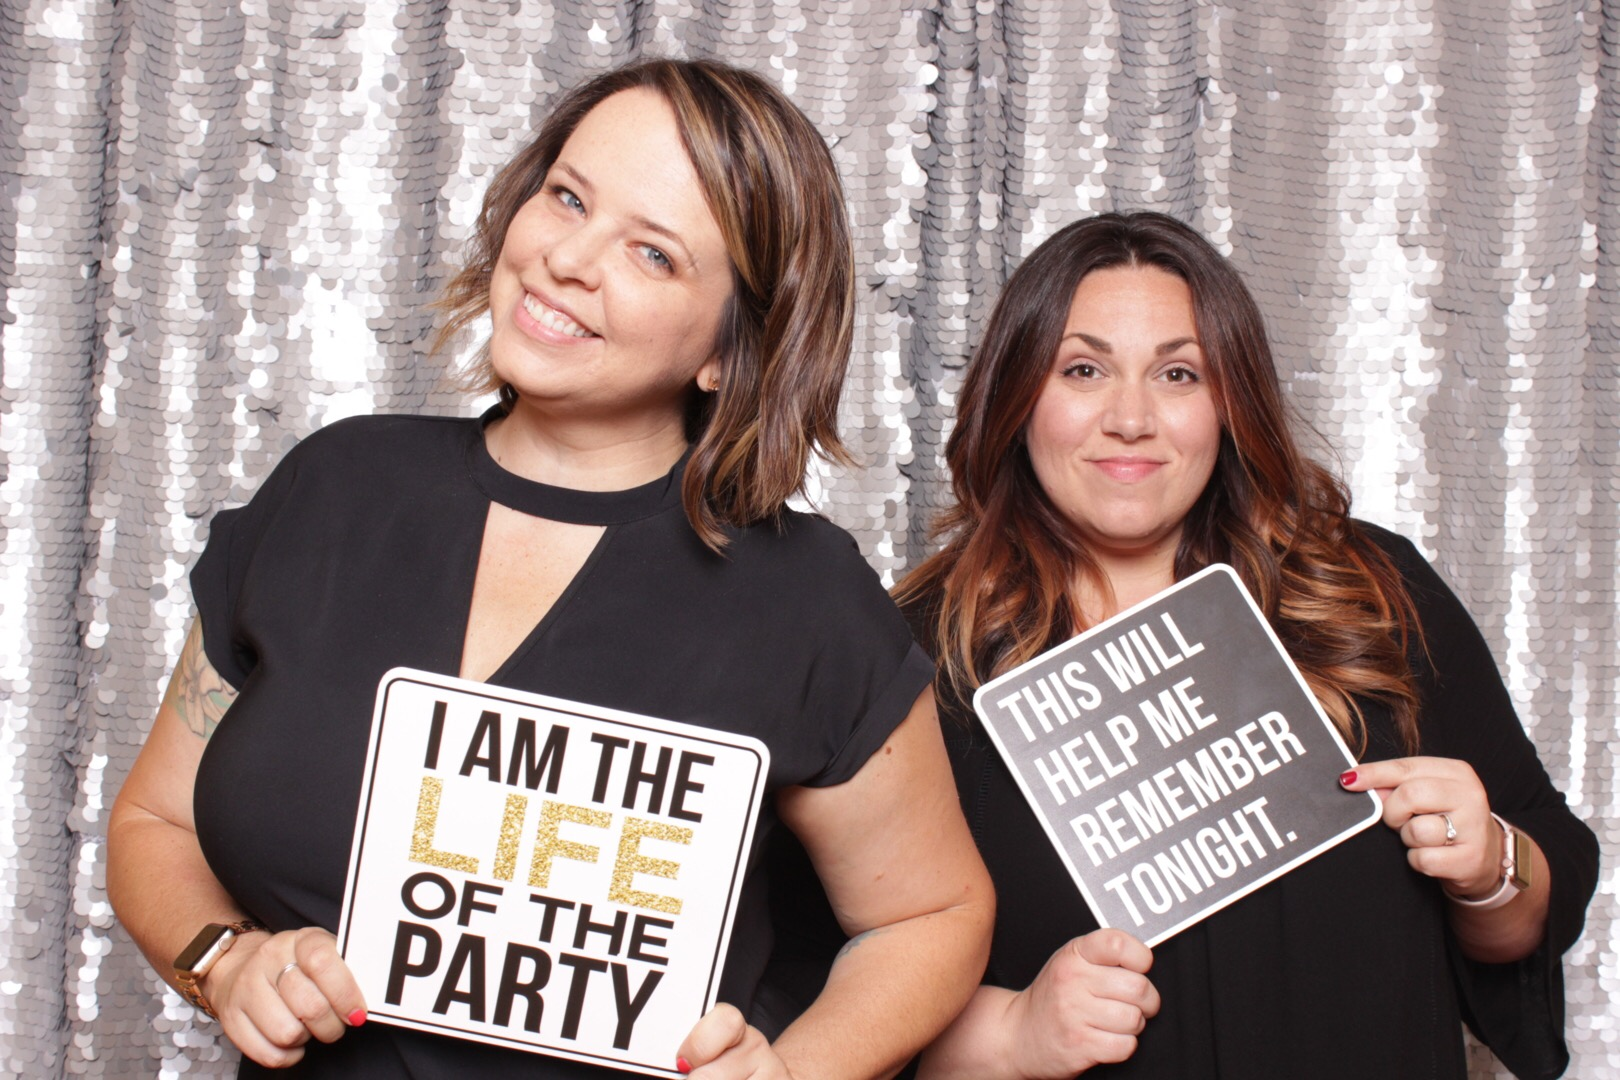 The Attendants - Professional, trained, and awesome - every rental comes with an attendant to assist with posing, props, and print handling. They'll even hold your drink as you have fun. Sorry, you can't keep them.